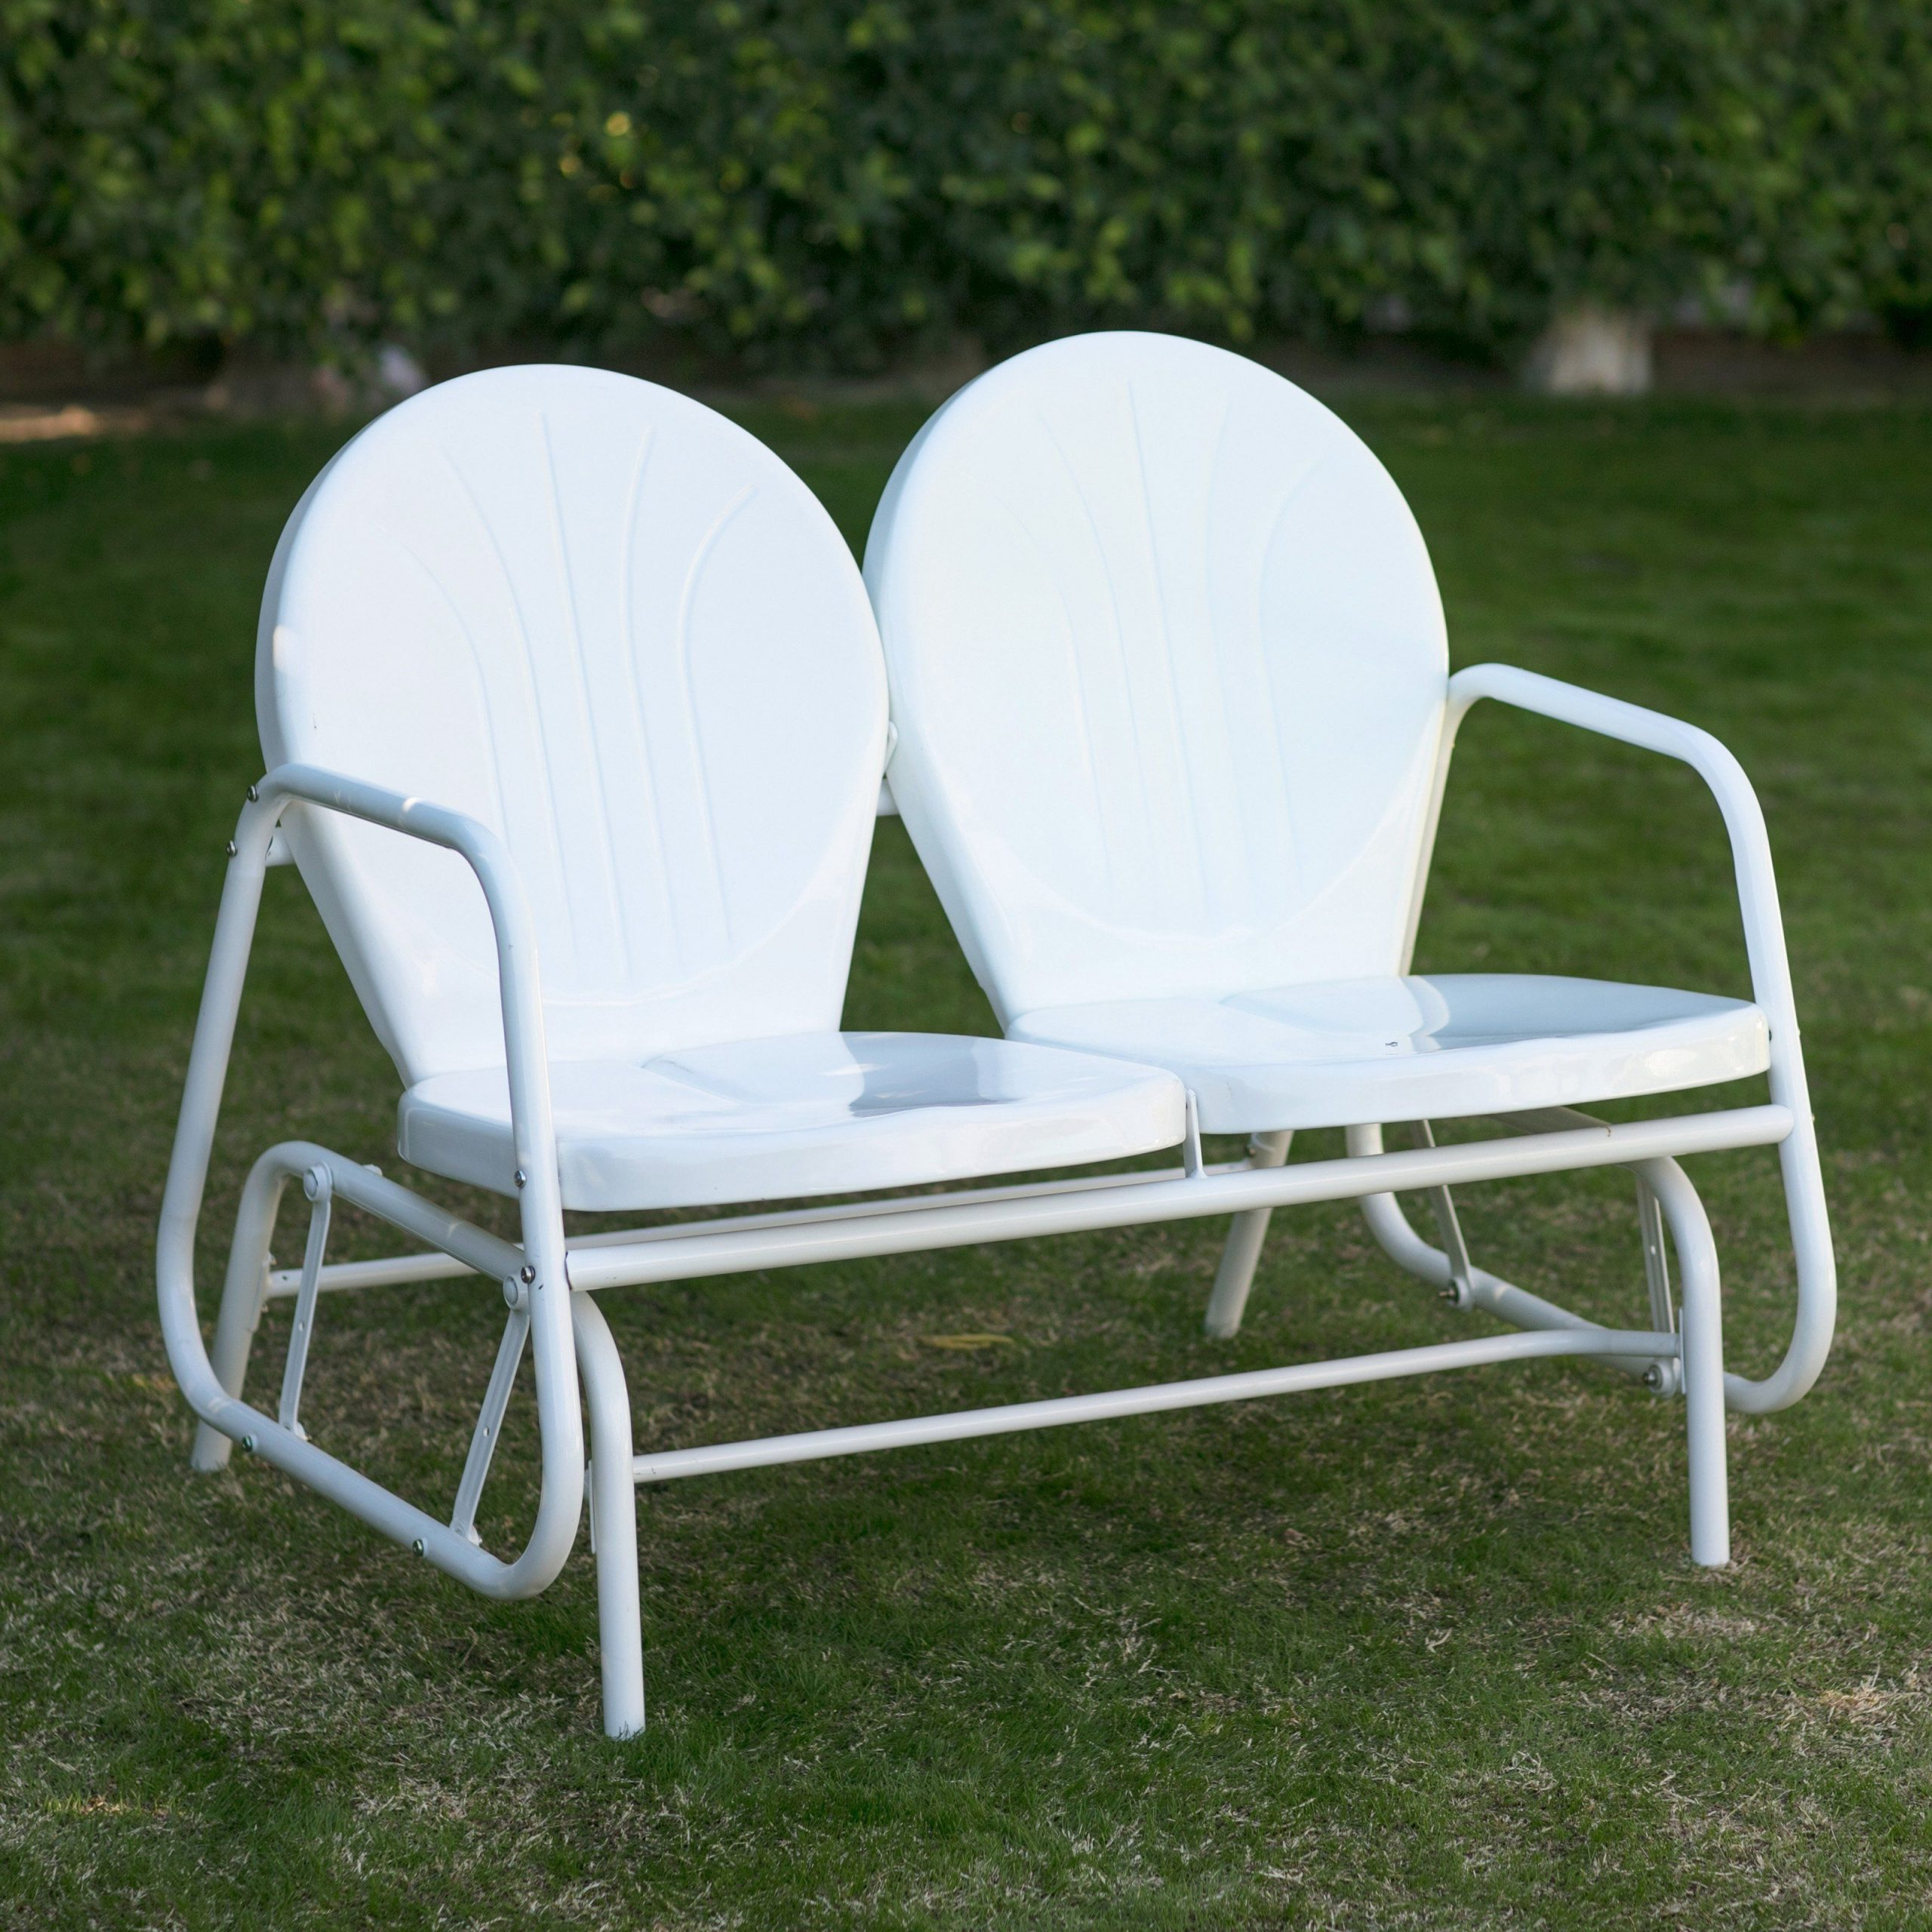 Vintage Metal Porch Glider Deck Chair Pair Yard Patio Within Metal Retro Glider Benches (Image 24 of 25)